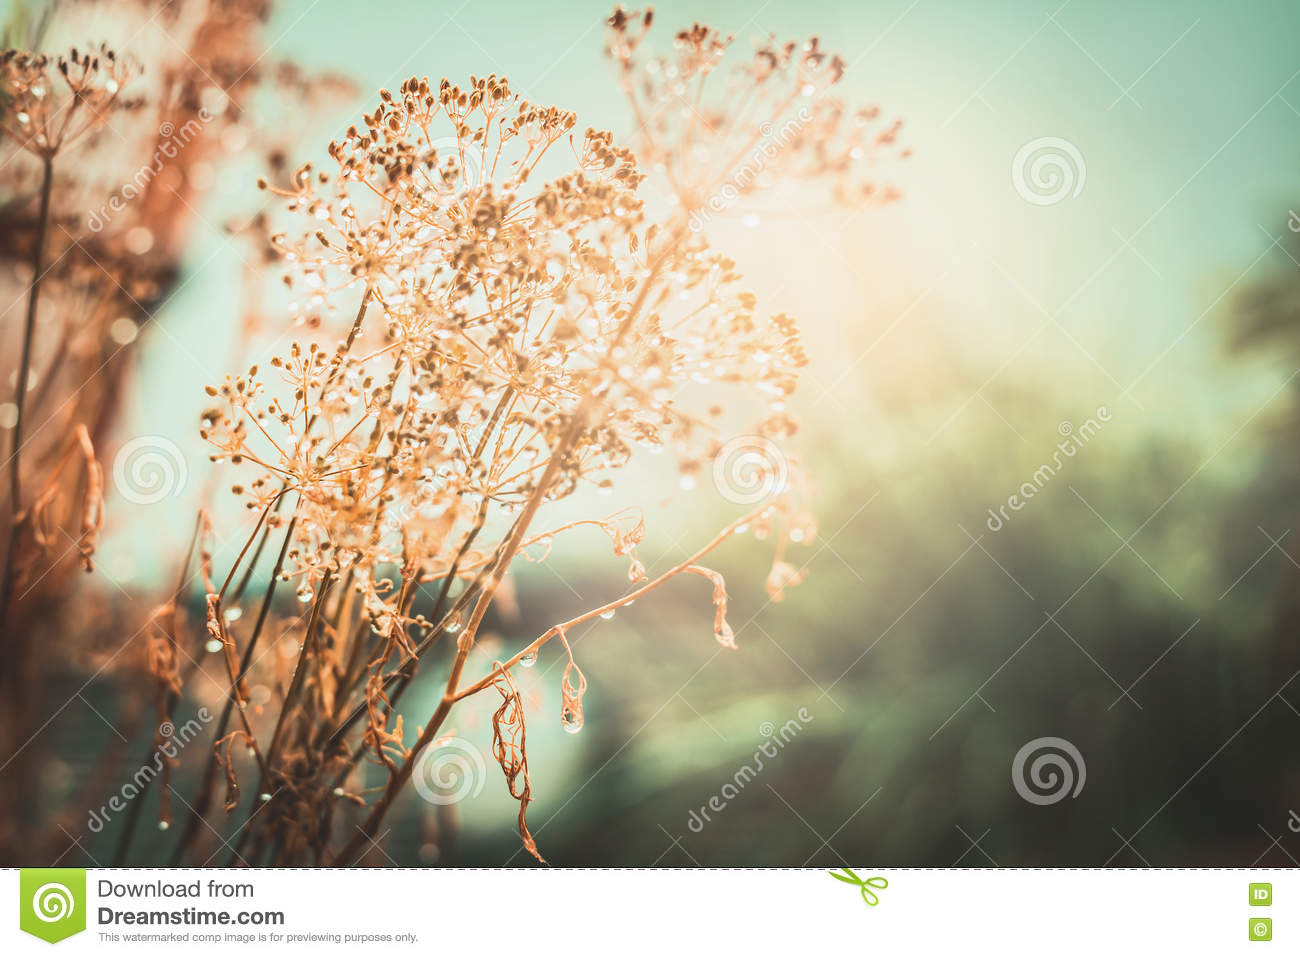 Autumn sunset landscape nature background. Dried flowers with water drops after the rain